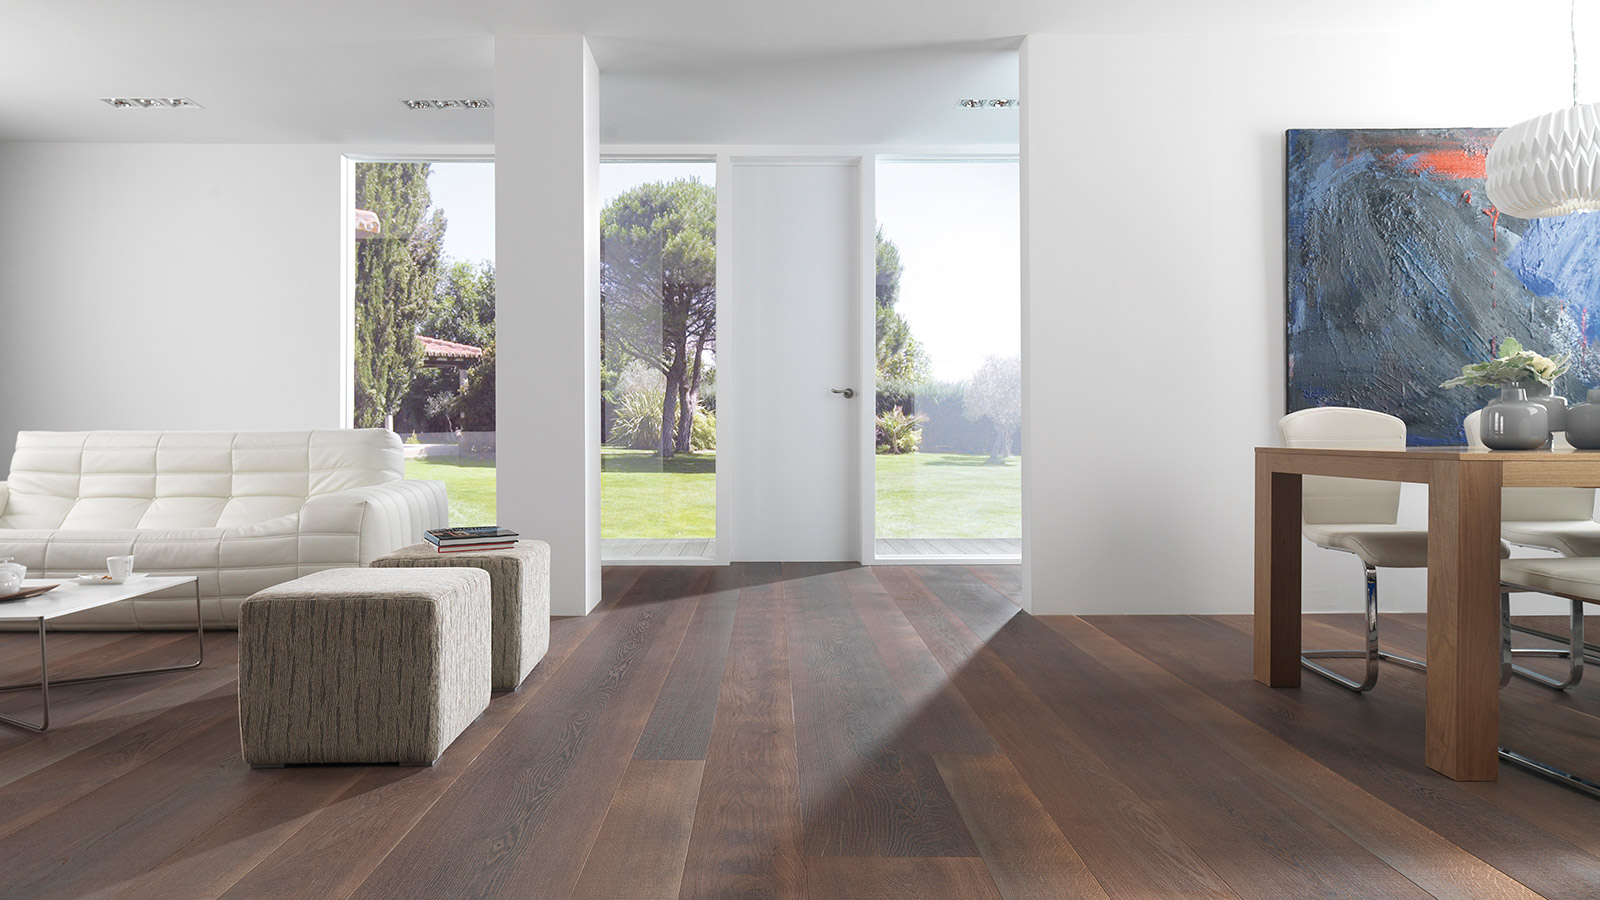 How to lay parquet flooring